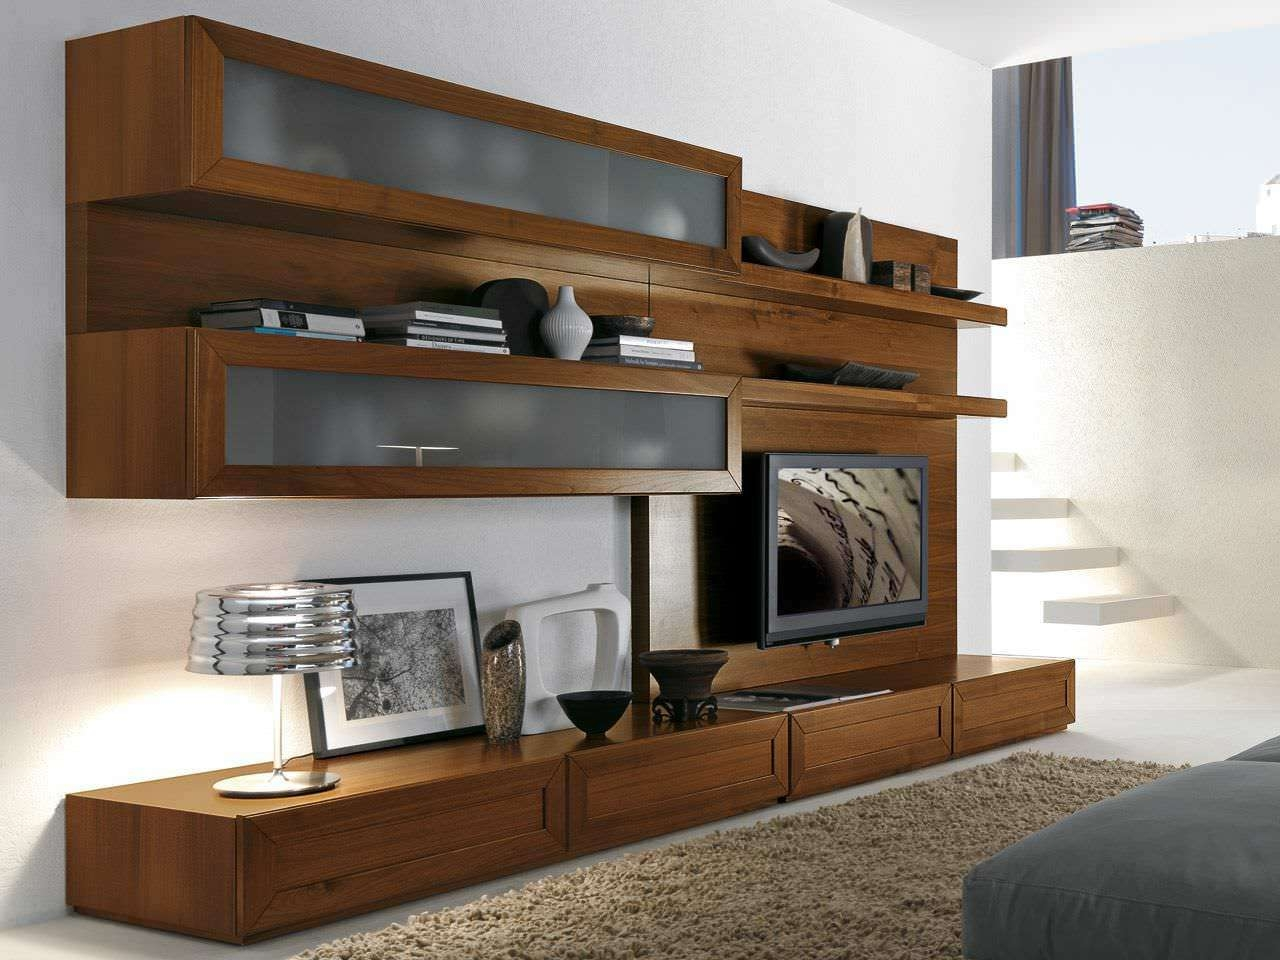 Tv Wall Units Cabinets – Wall Units Design Ideas : Electoral7 In Full Wall Tv Cabinets (View 16 of 20)